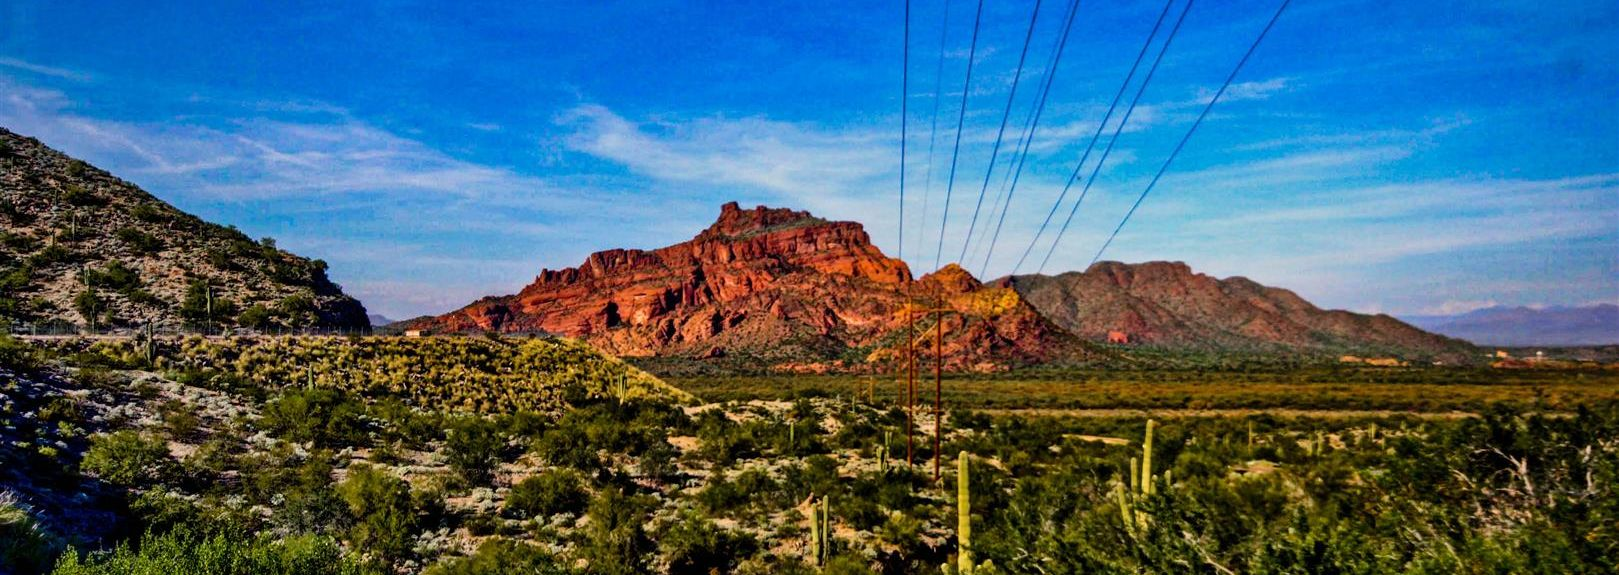 Red Mountain Ranch, Mesa, Arizona, United States of America